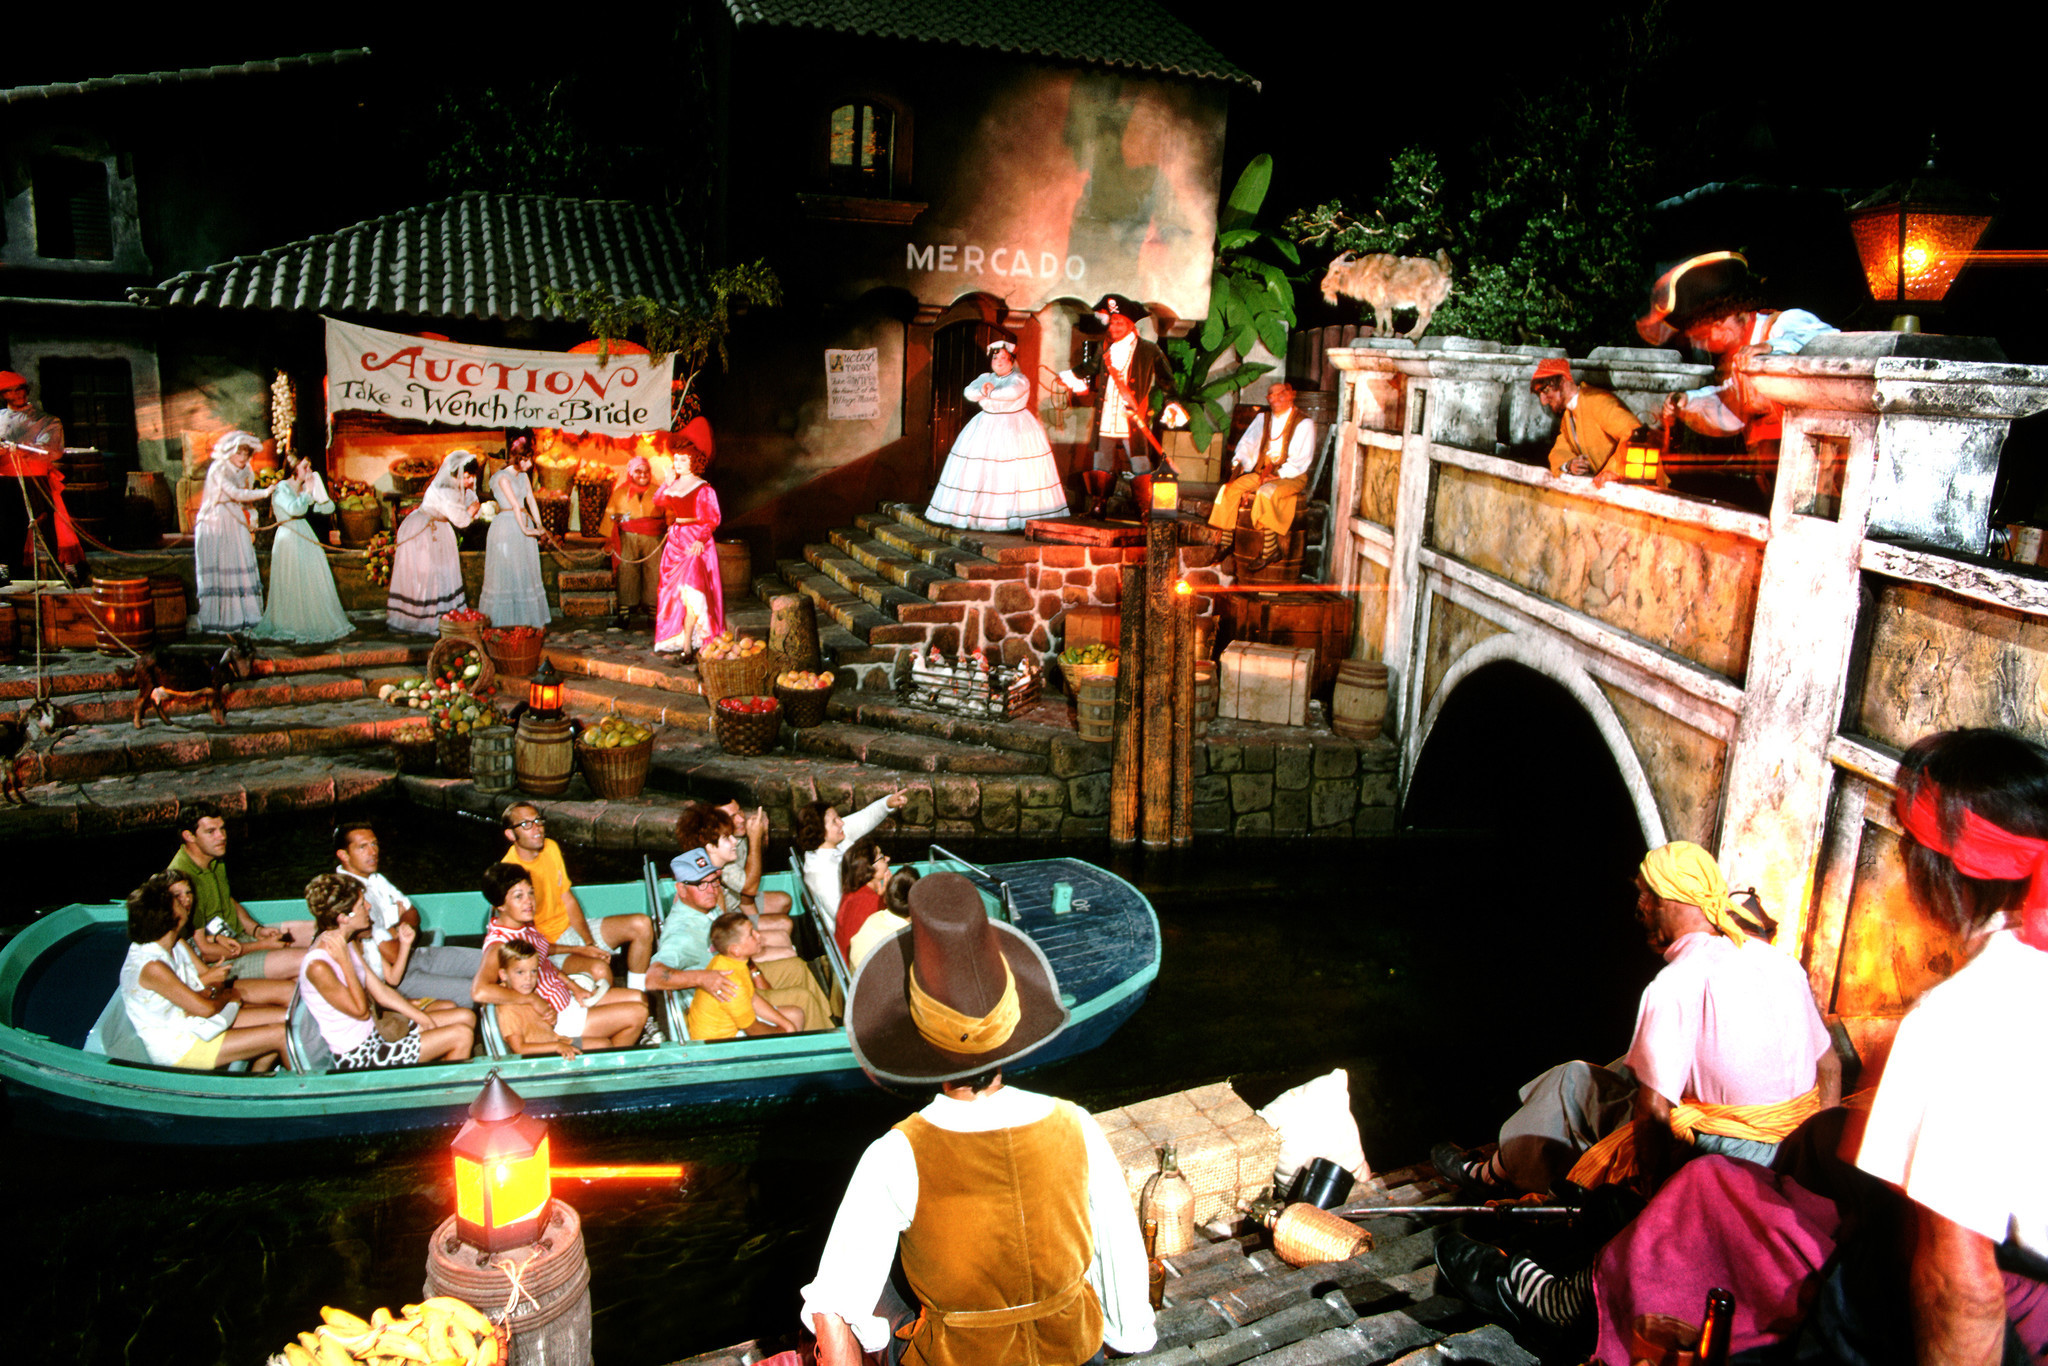 A view of the Pirates of the Carribean attraction at Disneyland.